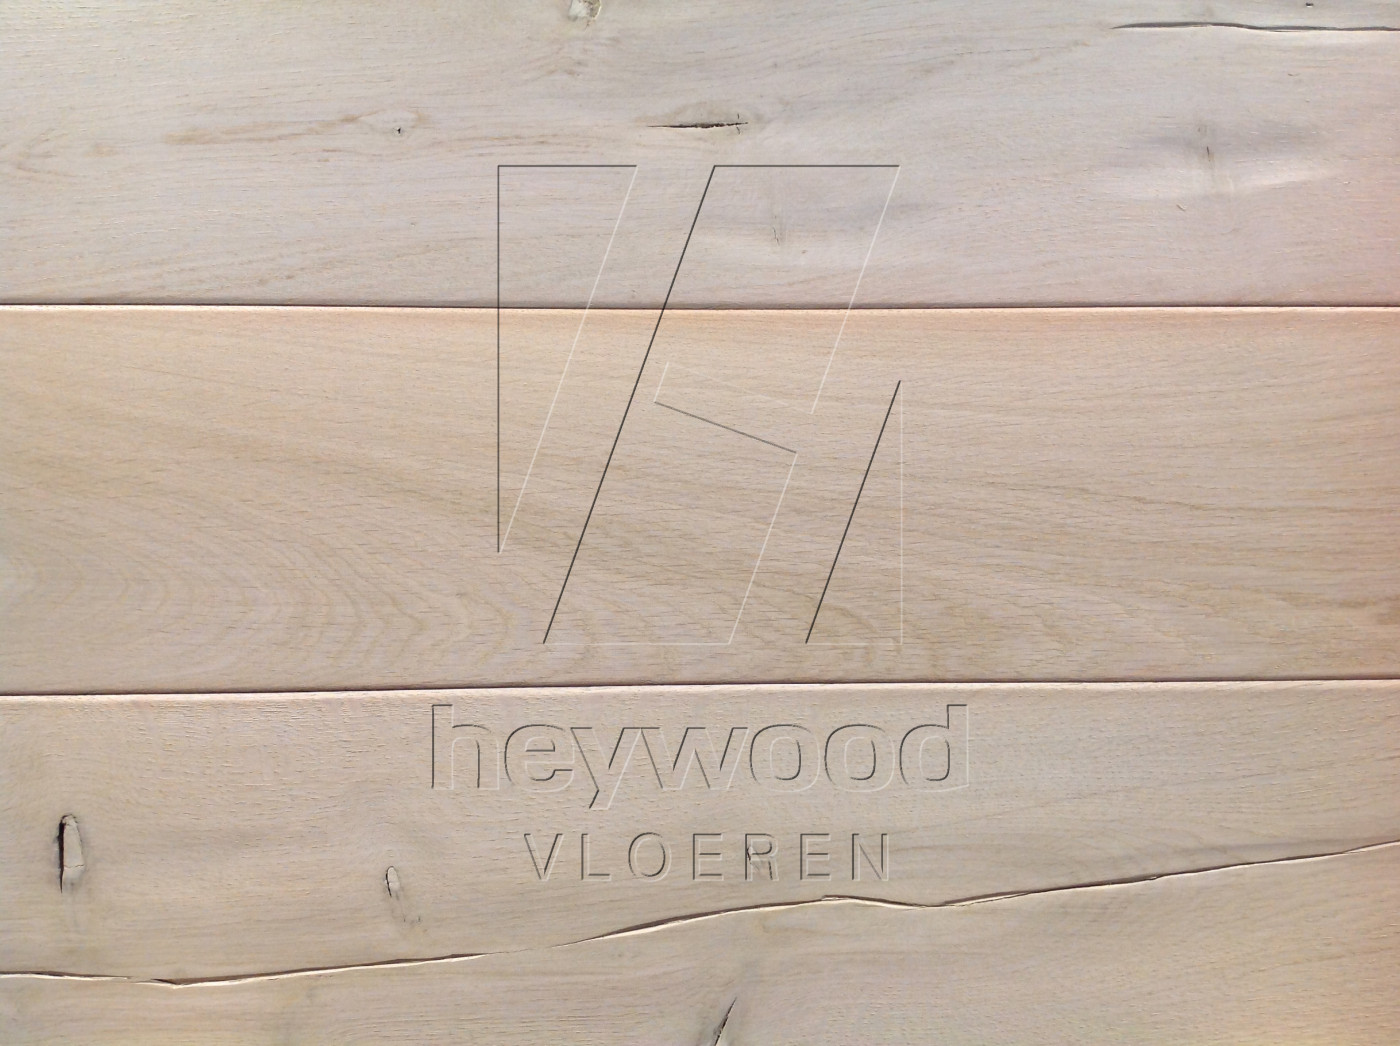 Antique Plank 'Camarque' in Aged Antique Surface of Aged Hardwood Floors